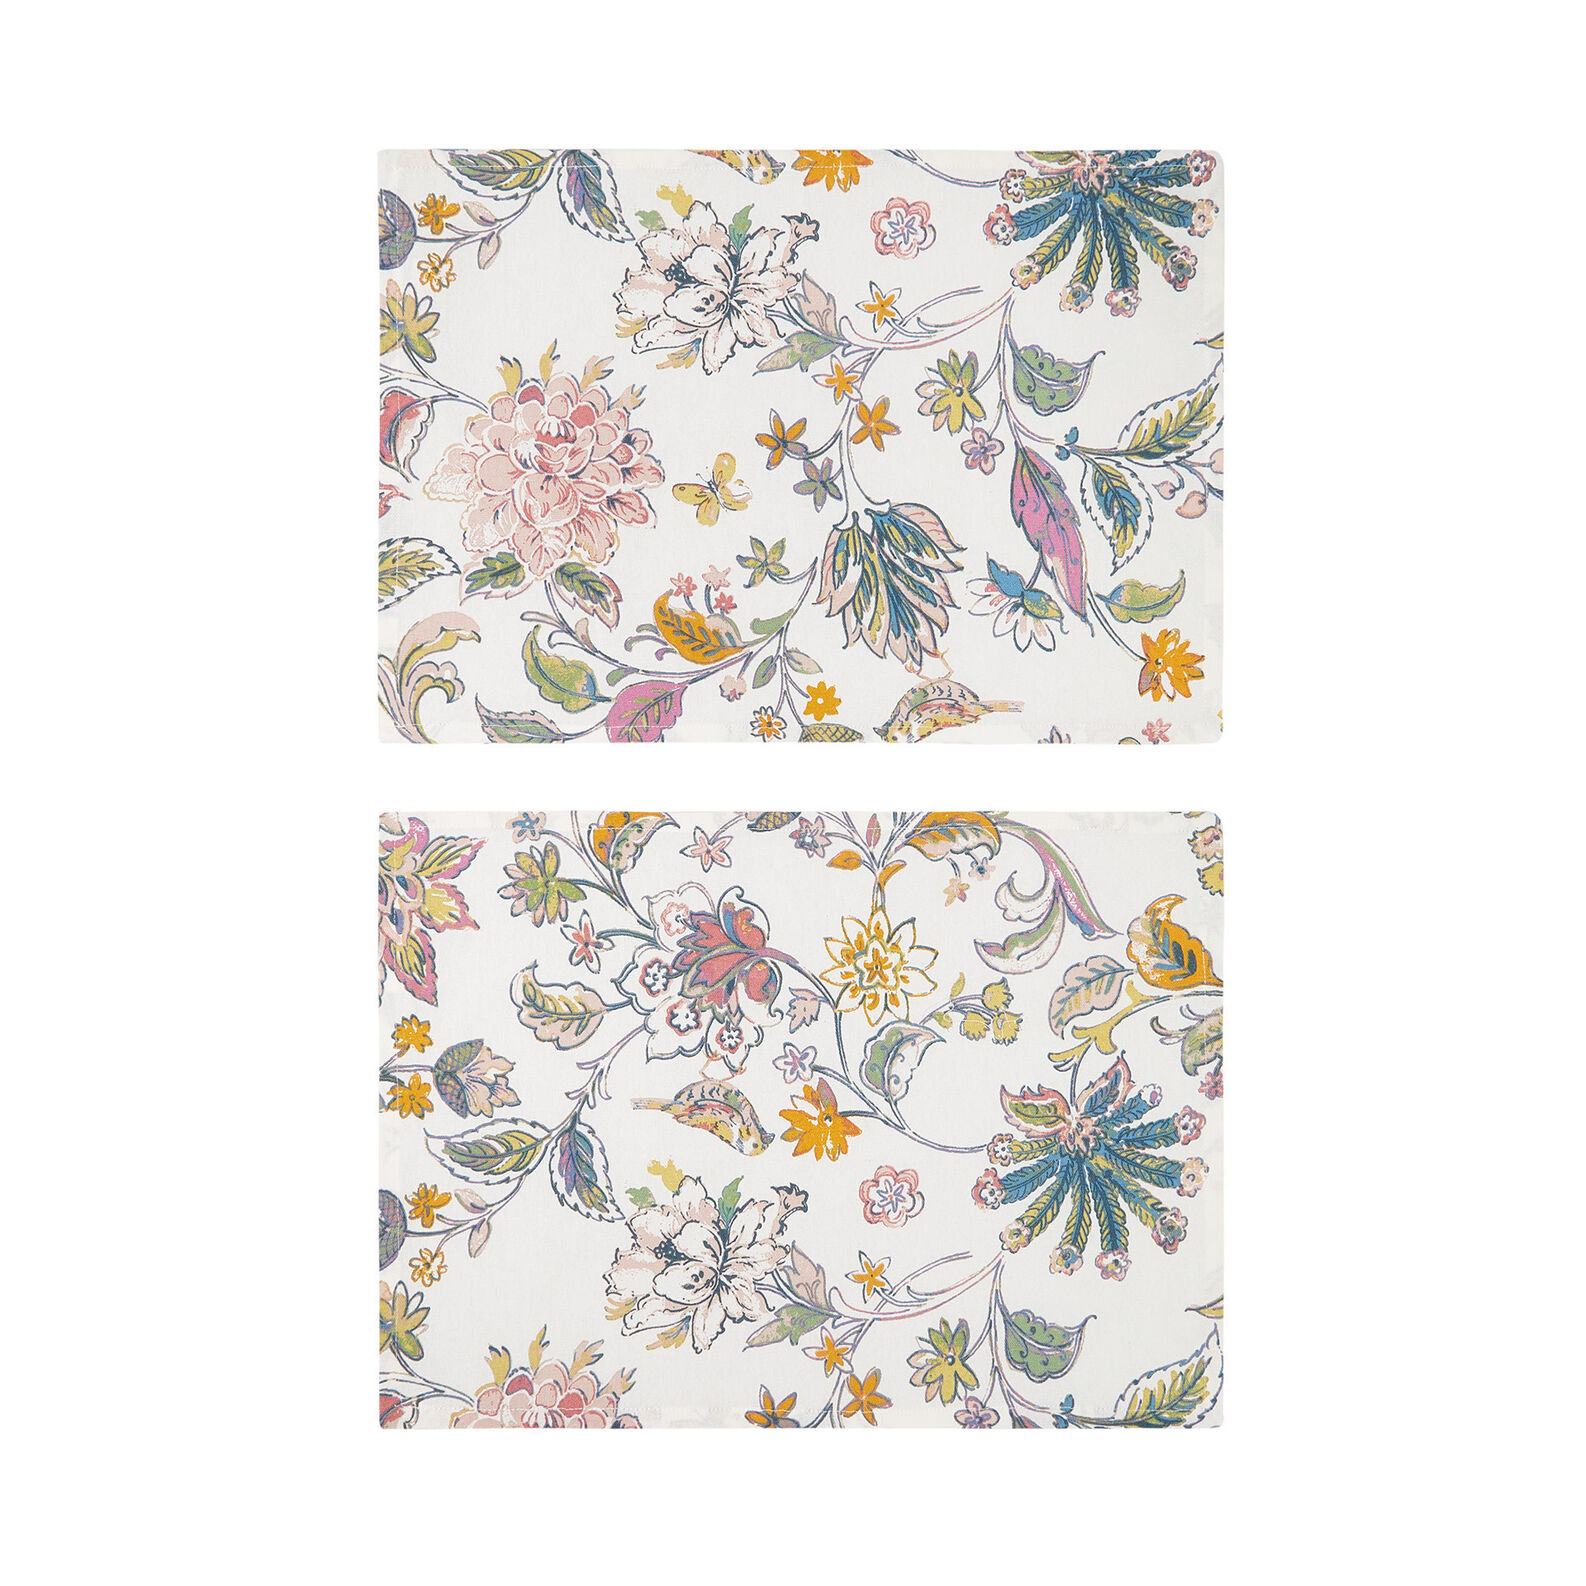 Set of 2 table mats in 100% cotton with floral print